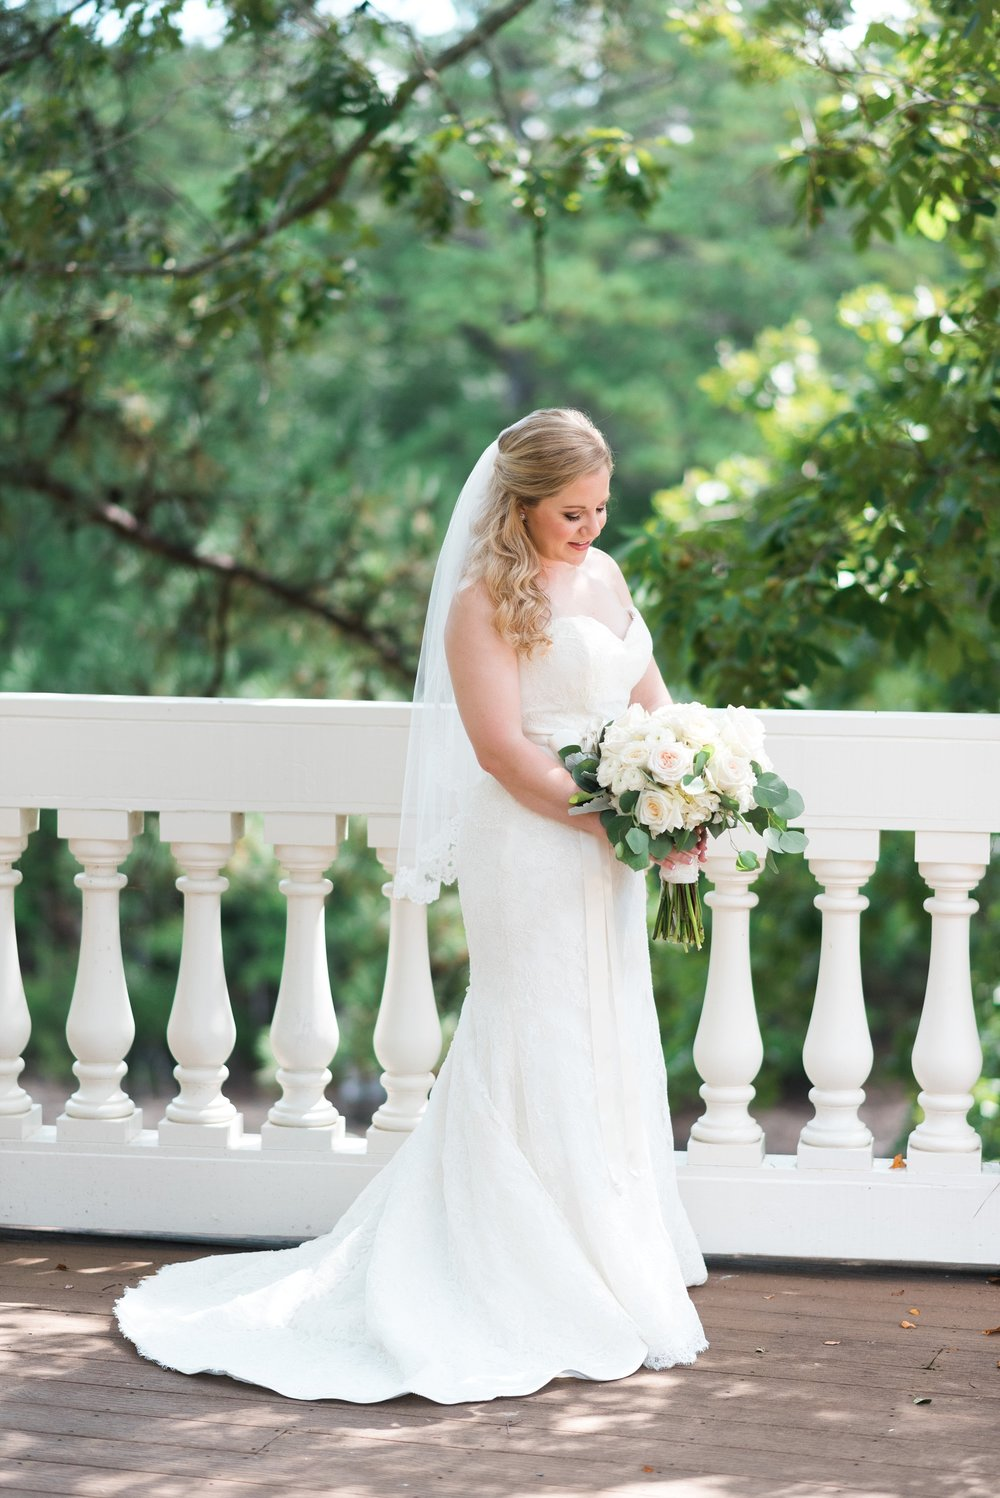 Bridal Portraits | Kyle & Erin | Scarbrough Wedding | Children's Harbor | Laura Wilkerson Photography